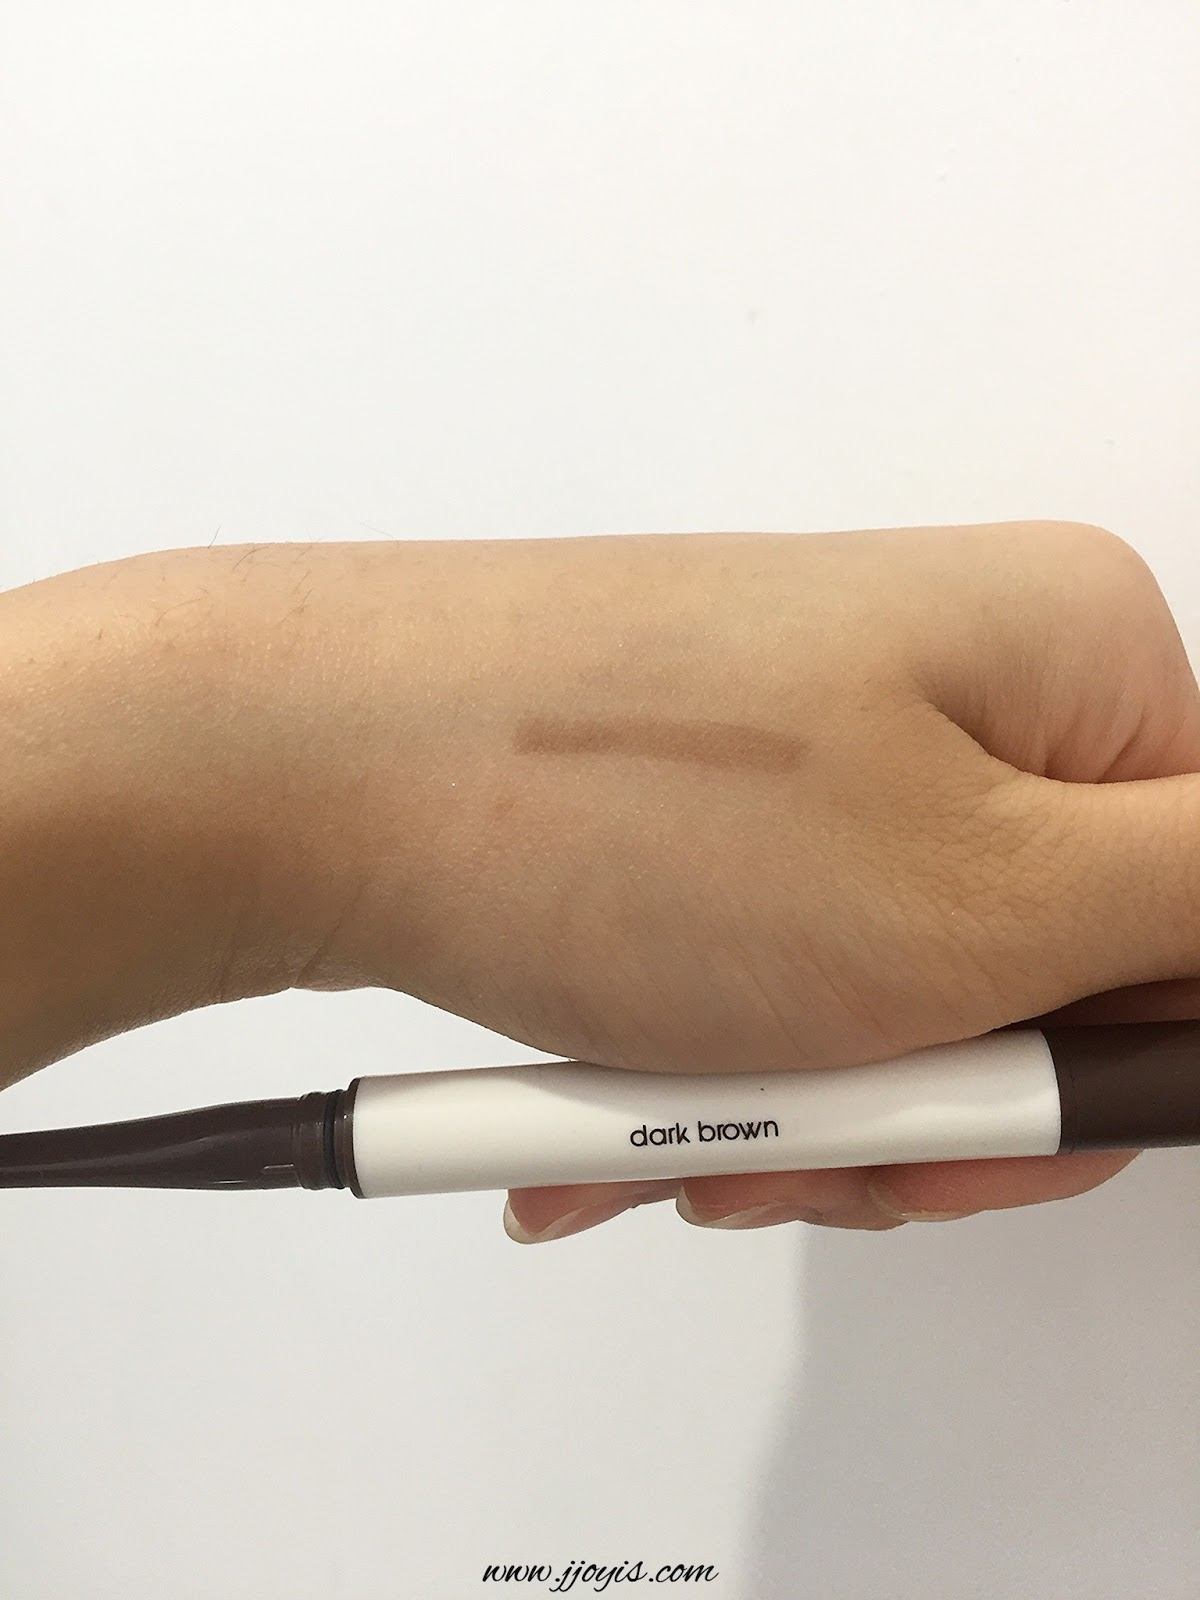 daiso eyebrow pencil dark brown review swatch